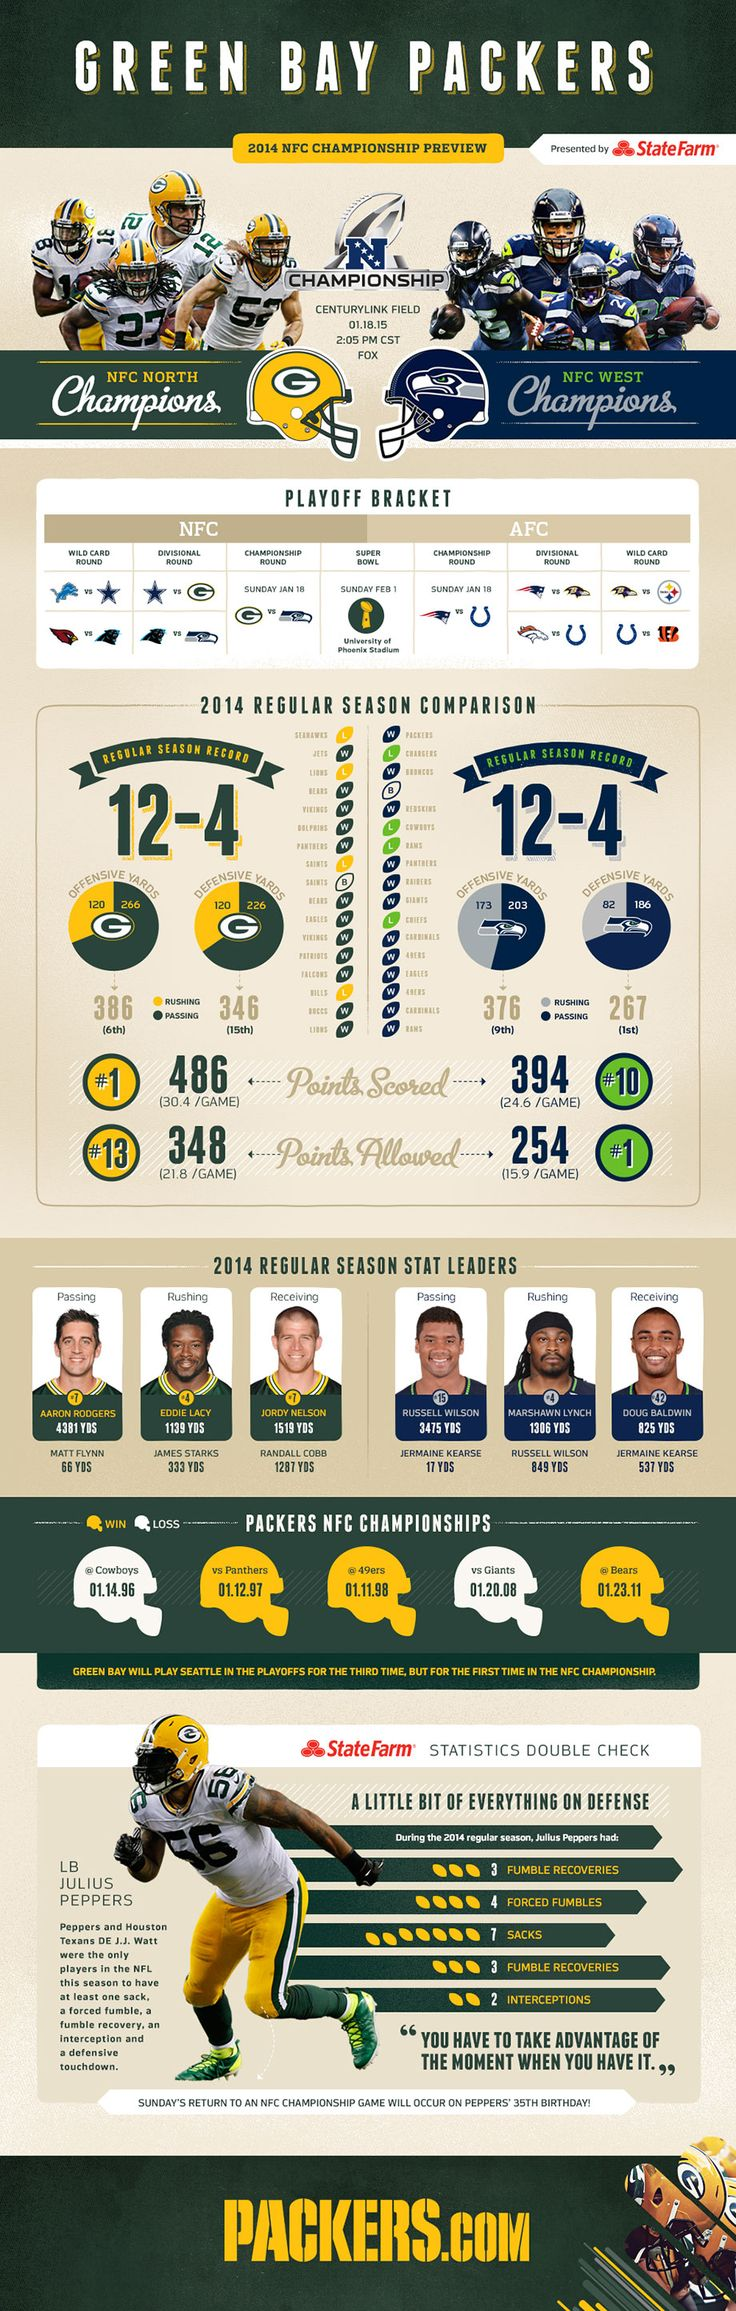 Packers Vs. Seahawks NFC 2014/2015 NFC Championship